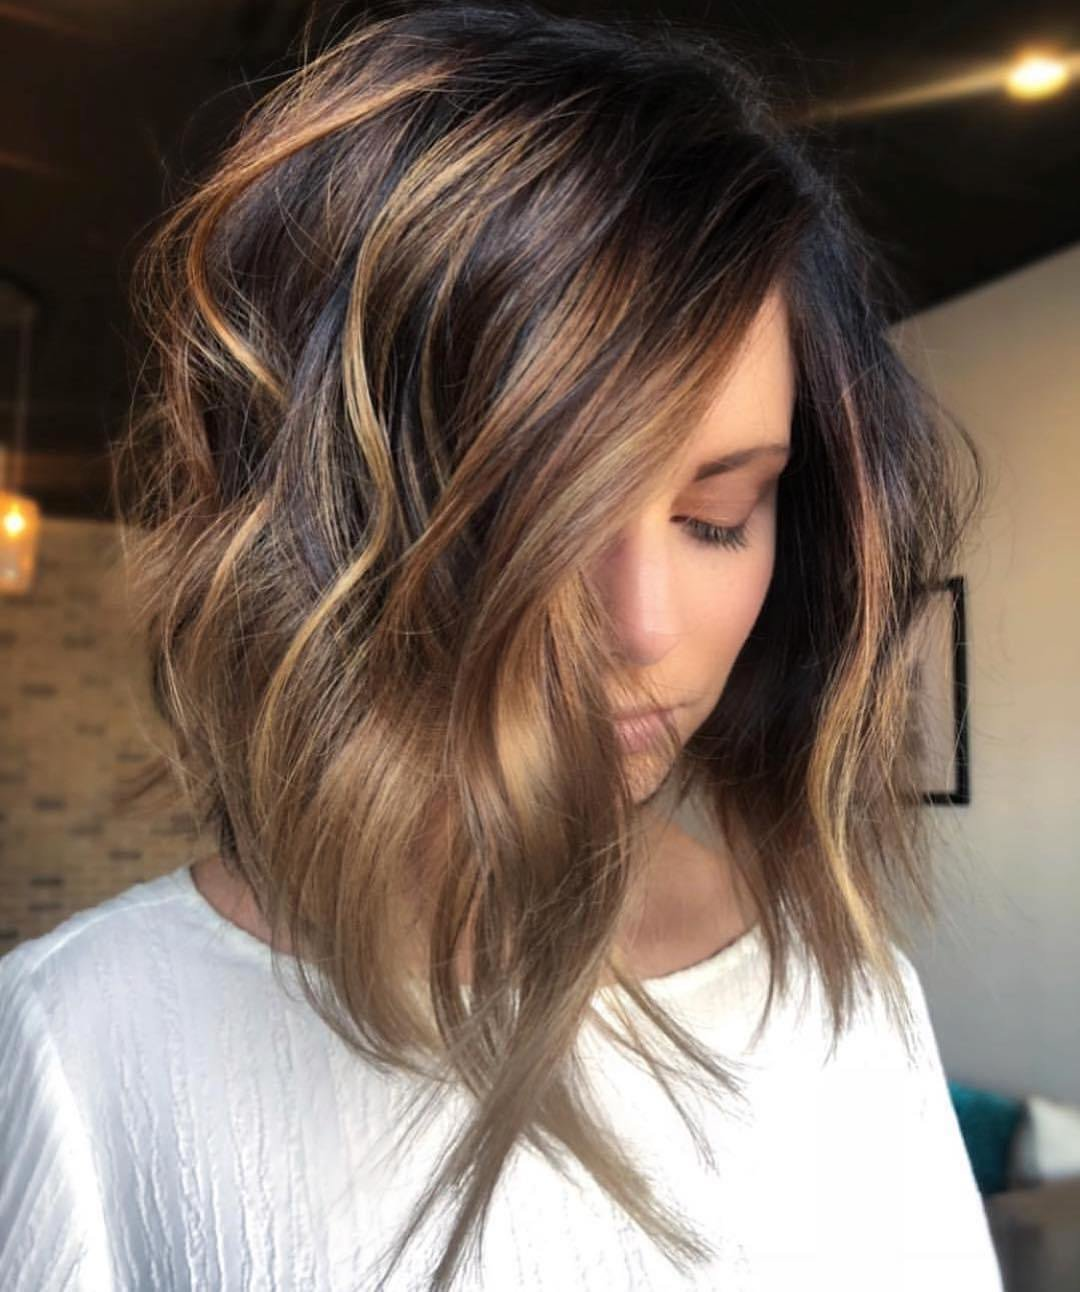 New Stylish Ombre Balayage Hairstyles For Shoulder Length Hair Ideas With Pictures